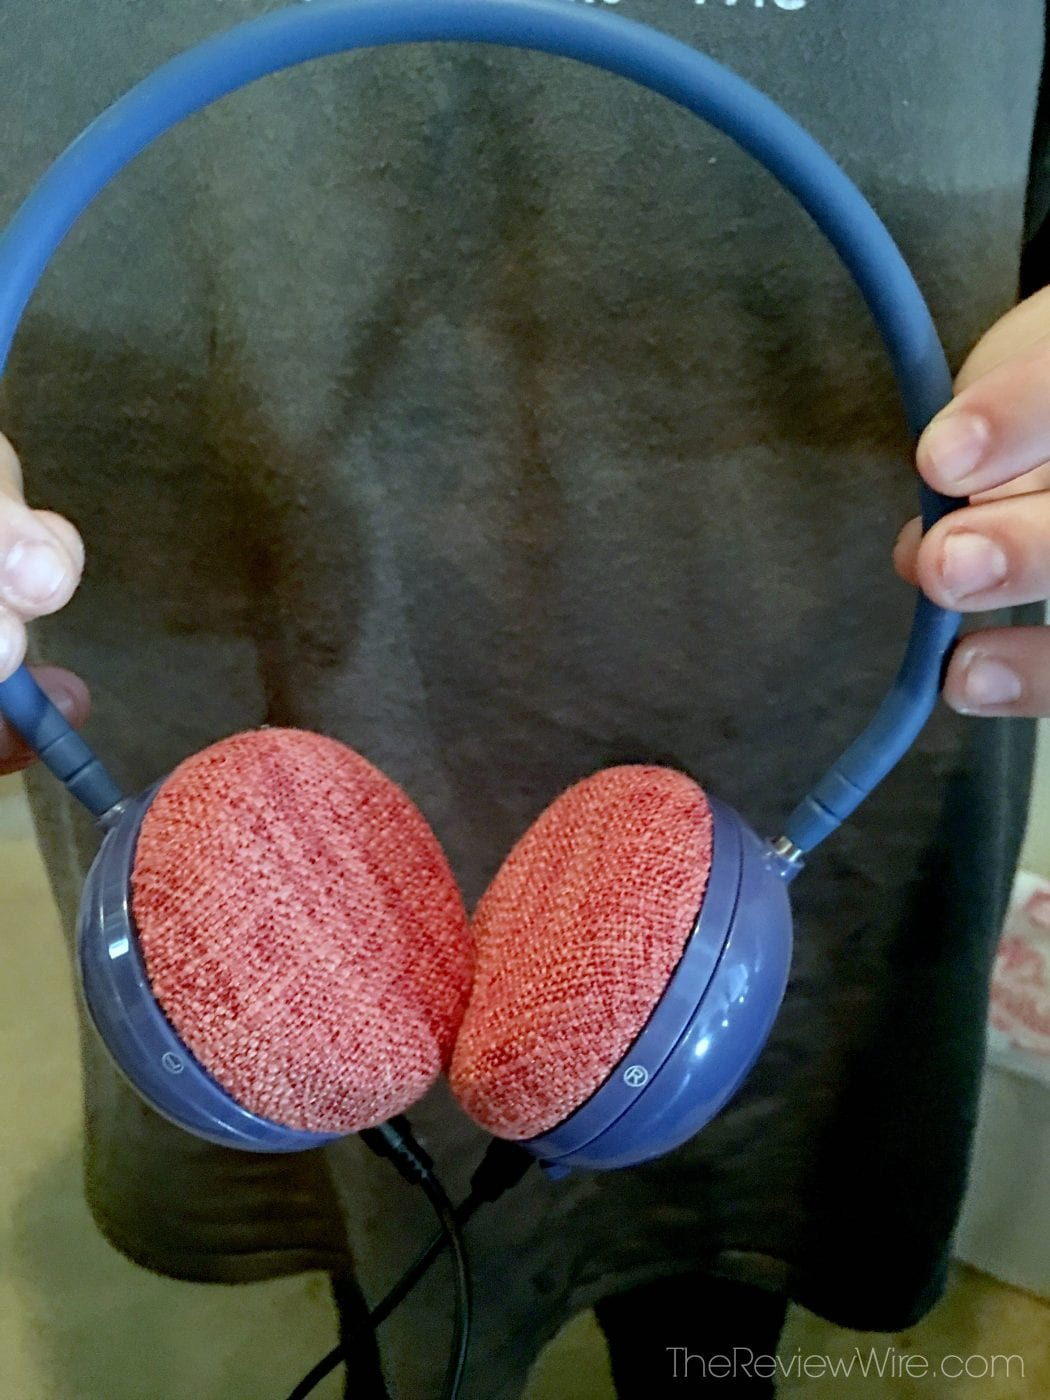 The Review Wire June & May Headphone Fabric Padding